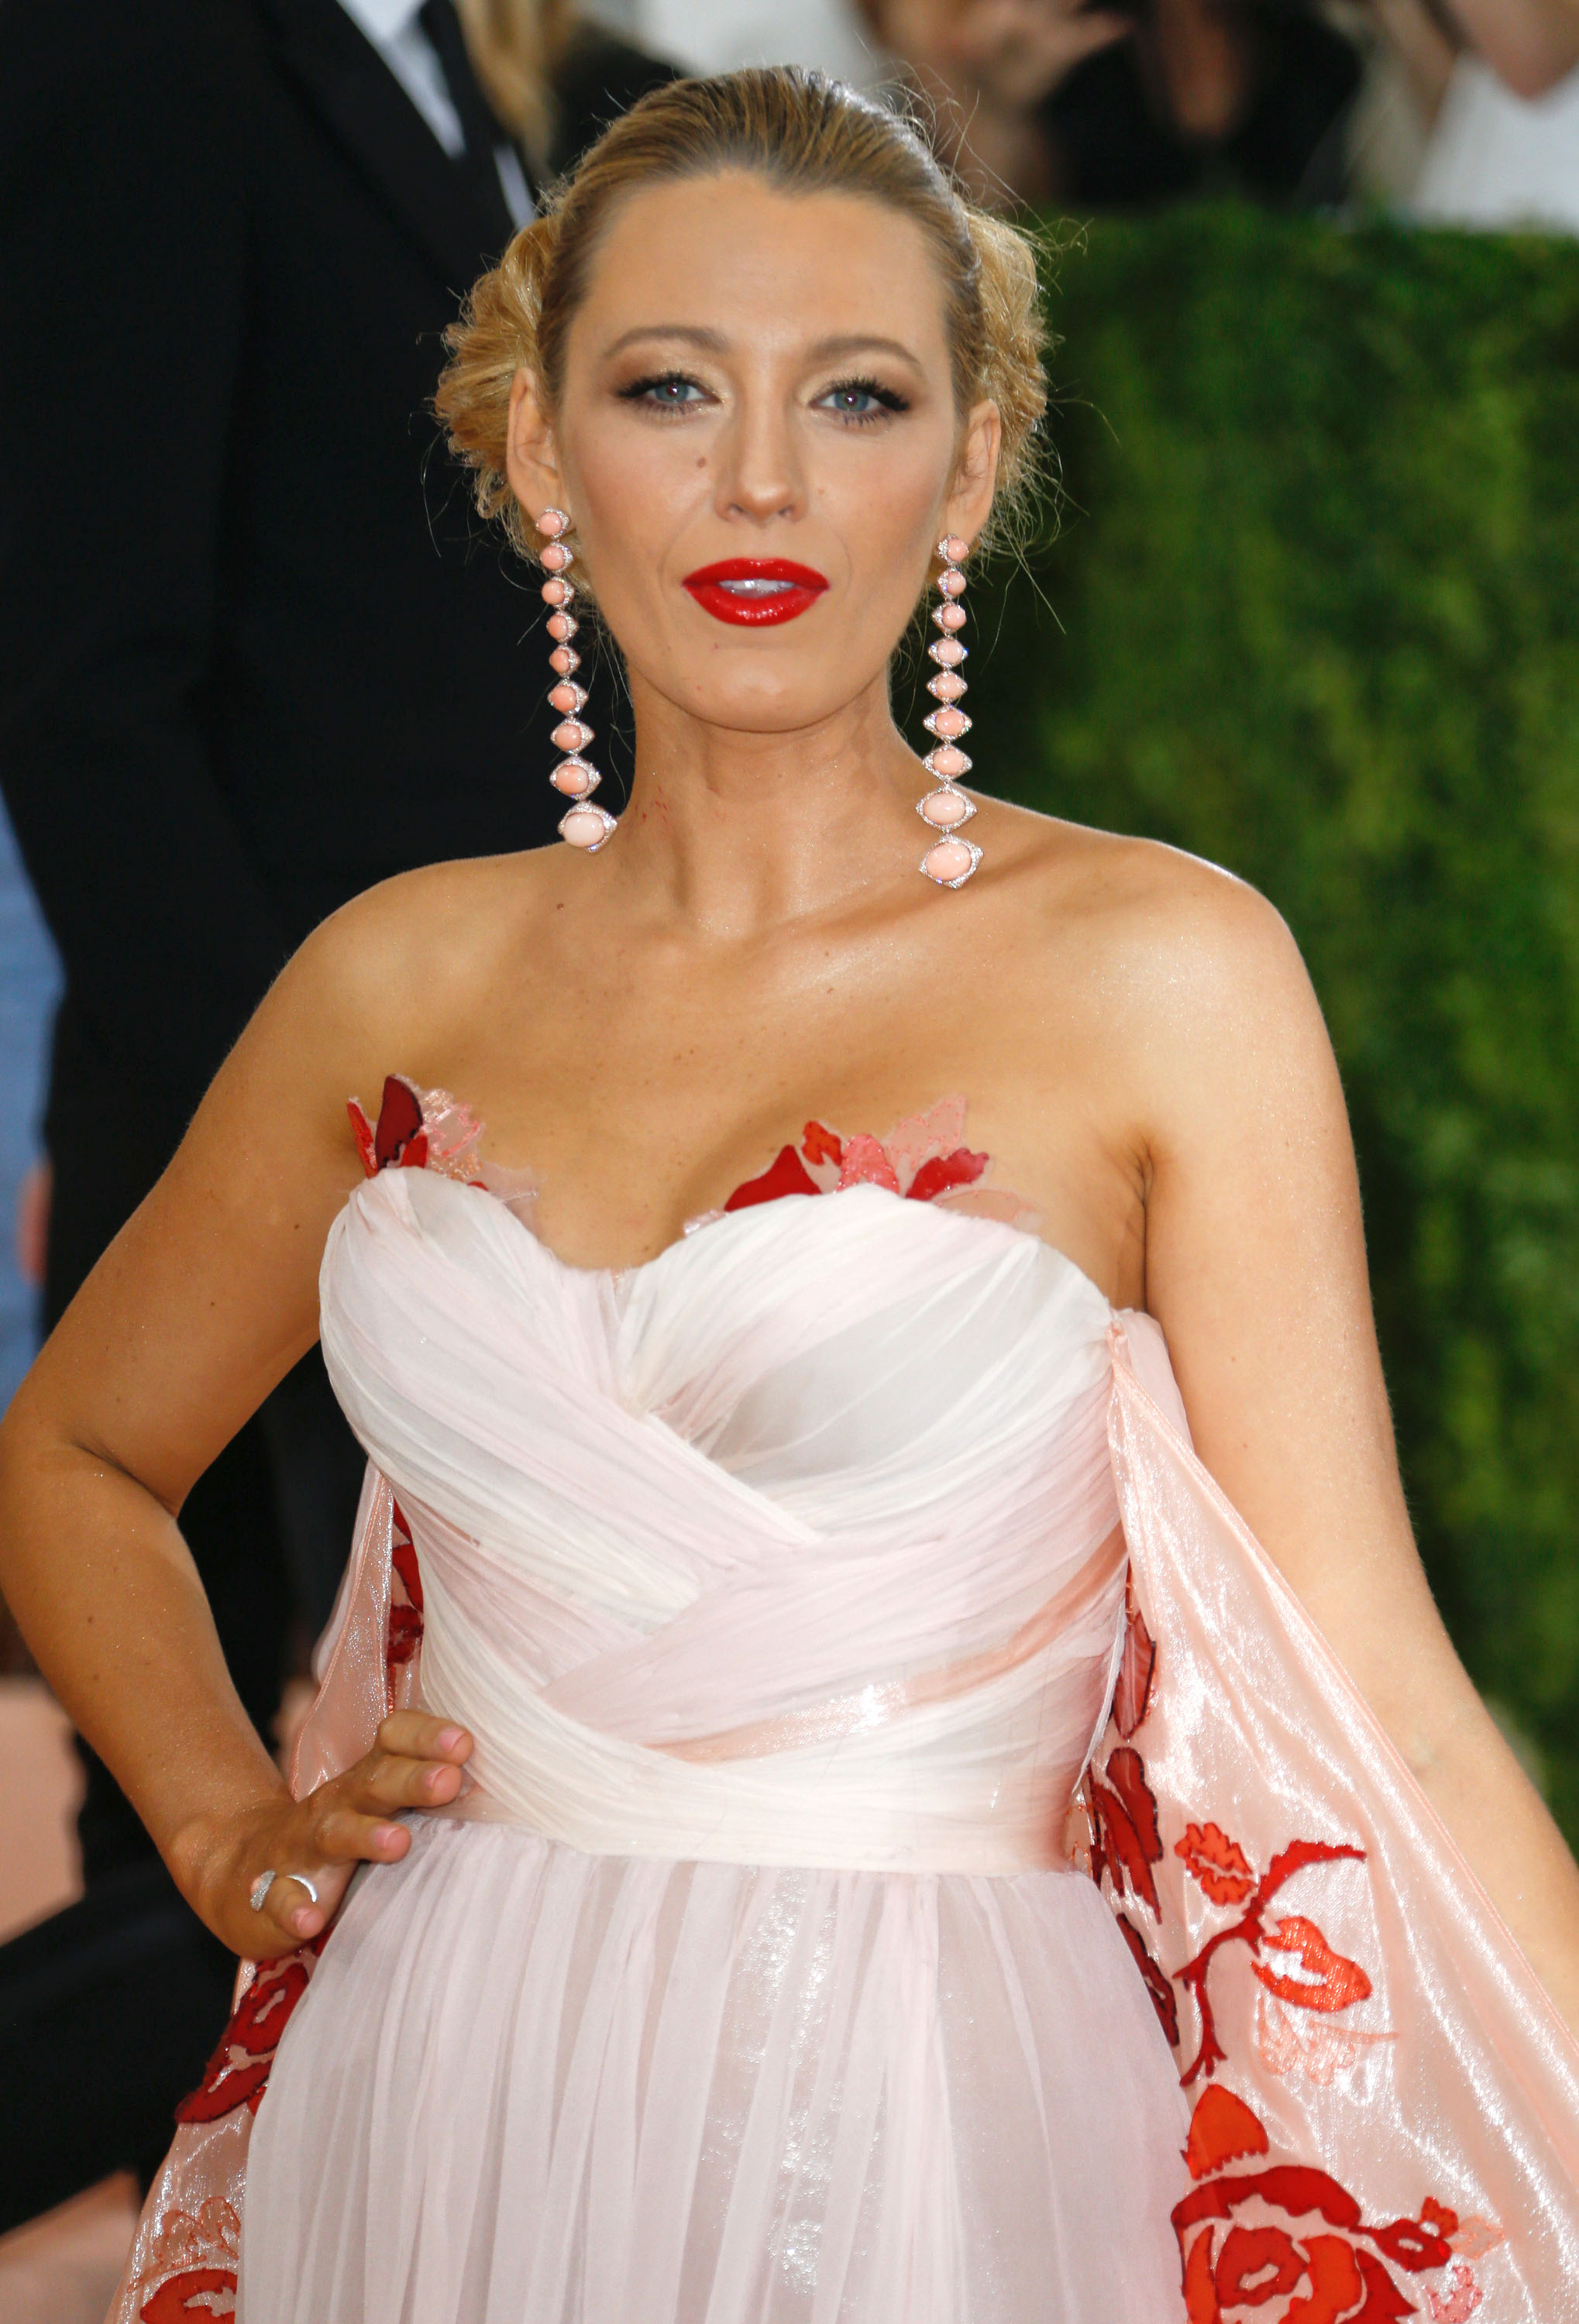 Met Gala Well Played For Another Event: Blake Lively in Burberry